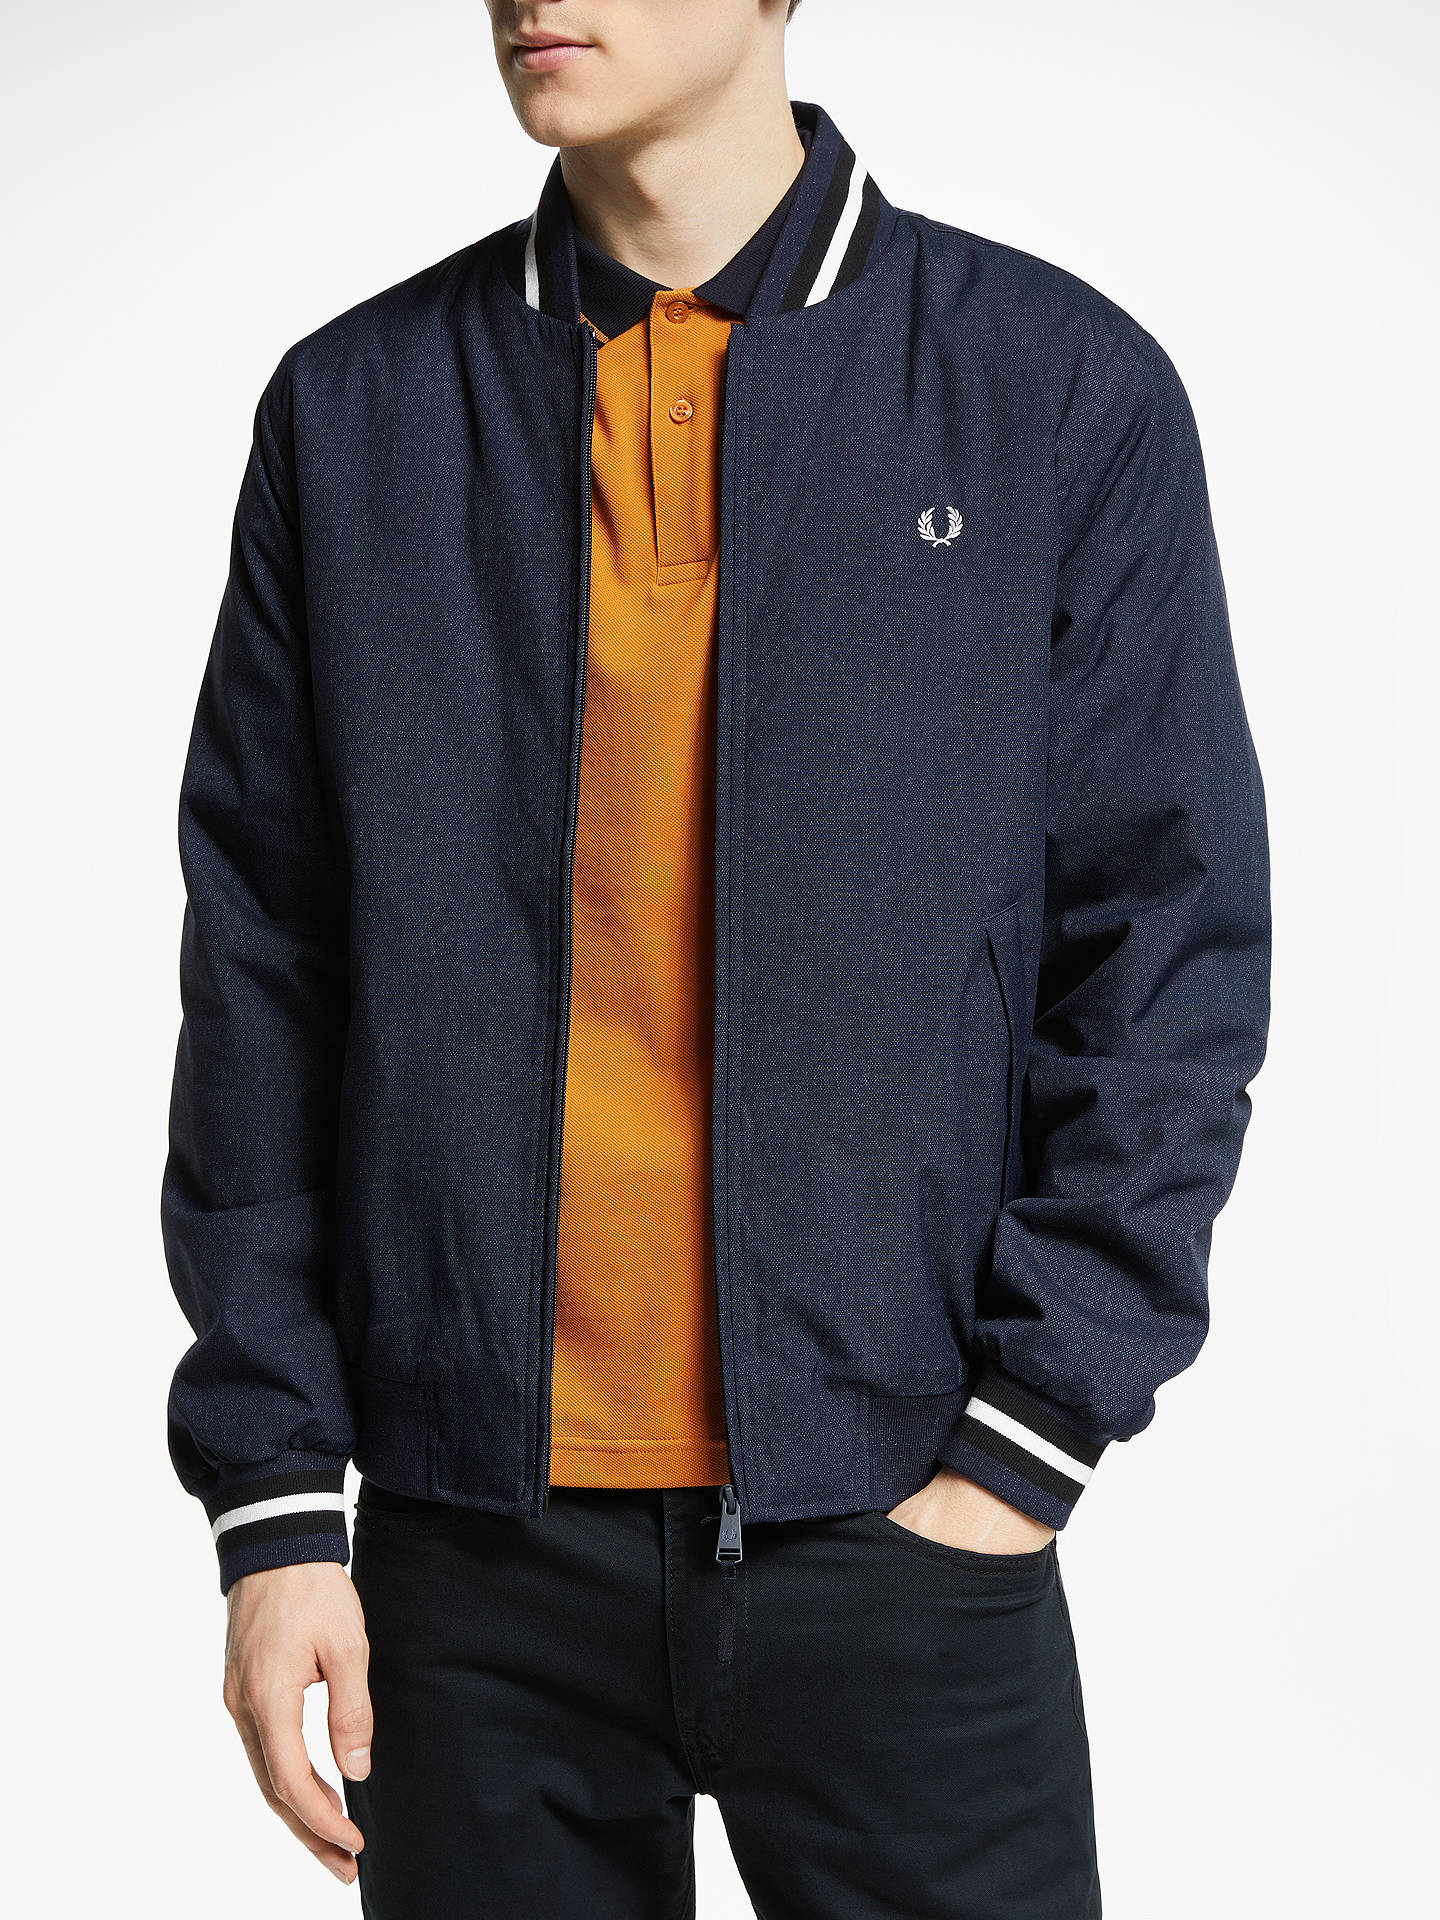 16a9be82c Fred Perry Marl Bomber Jacket, Navy at John Lewis & Partners